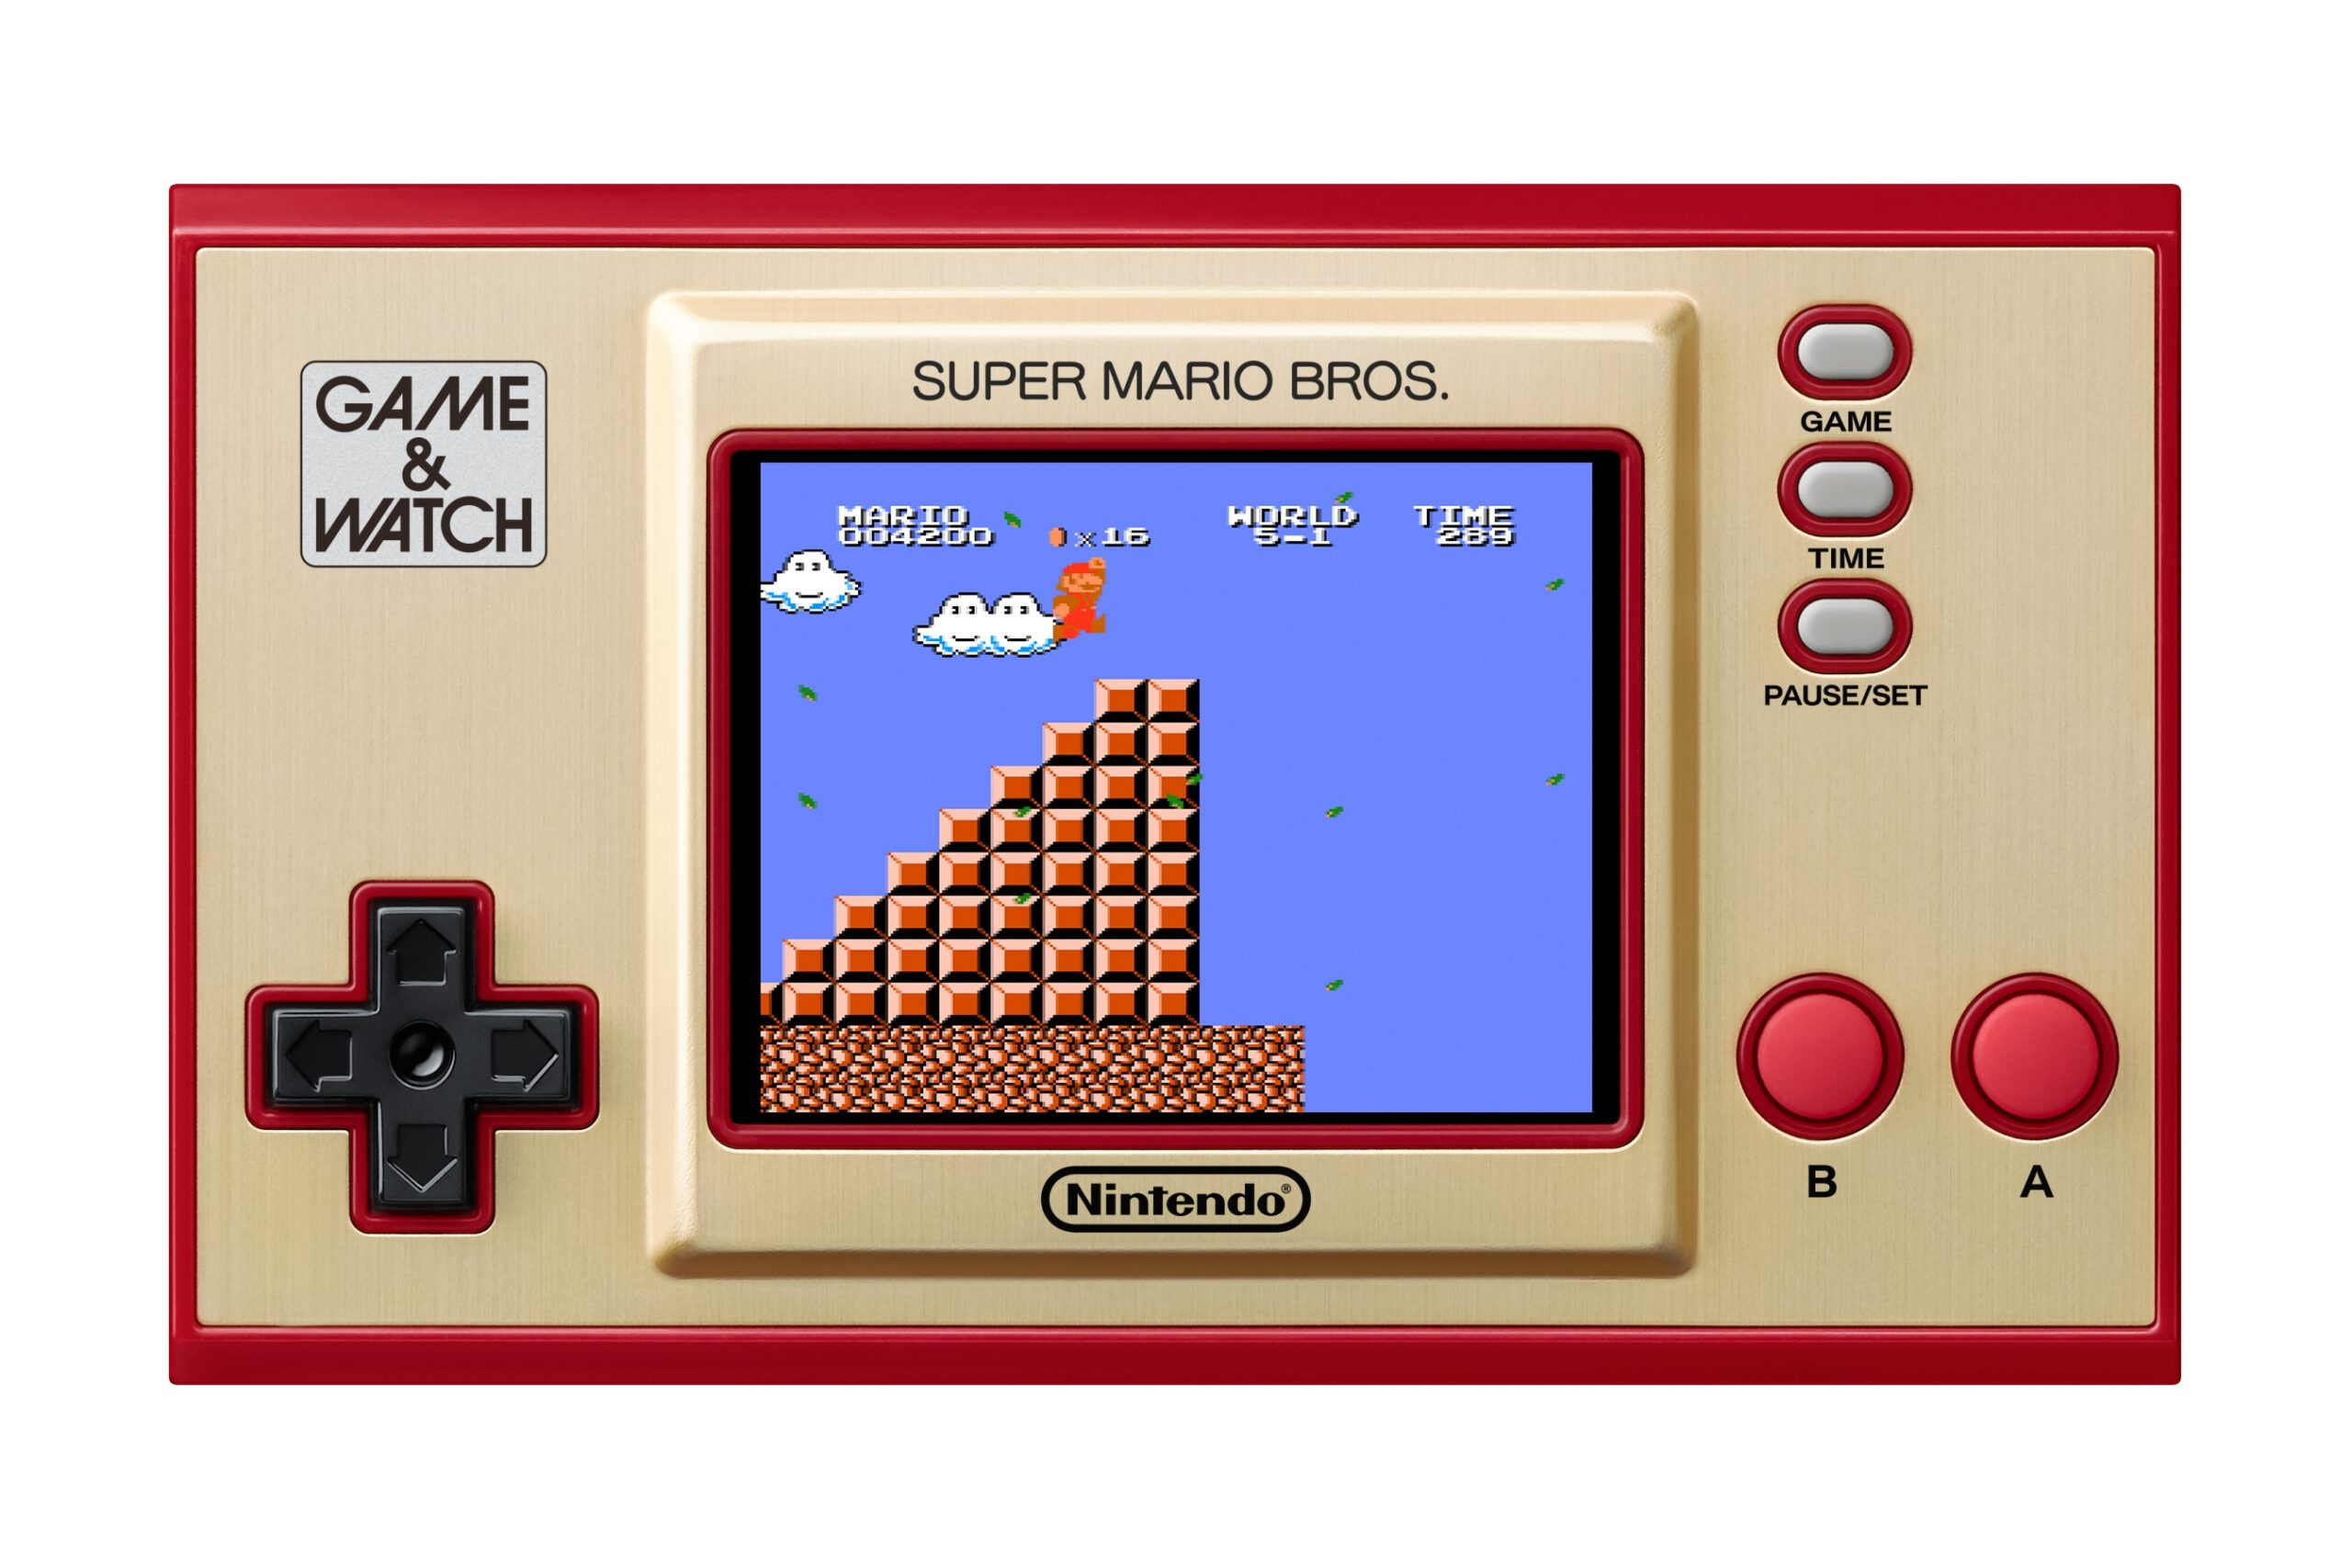 Game-and-Watch-Super-Mario-Bros_2020_09-03-20_015